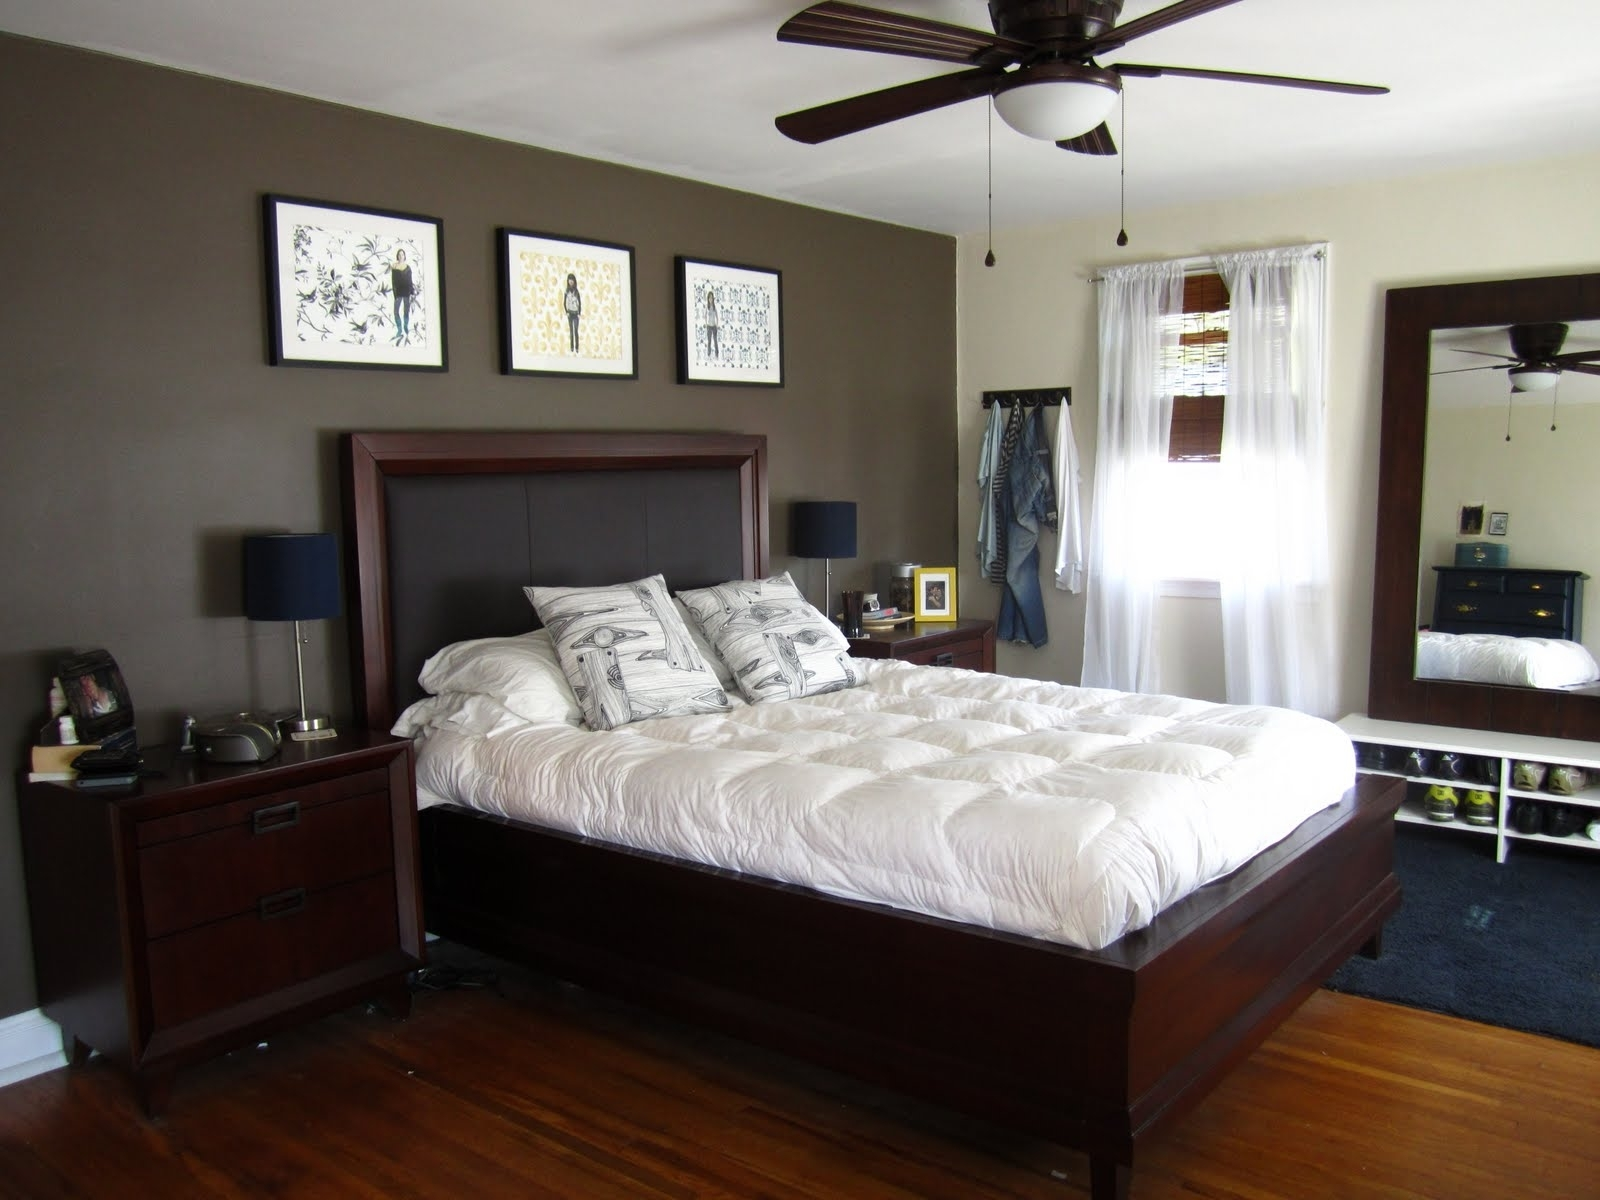 Most Popular Bedroom Design: Focal Wall Black Accent Wall Accent Wall Designs Intended For Wall Accents Behind Bed (Gallery 9 of 15)